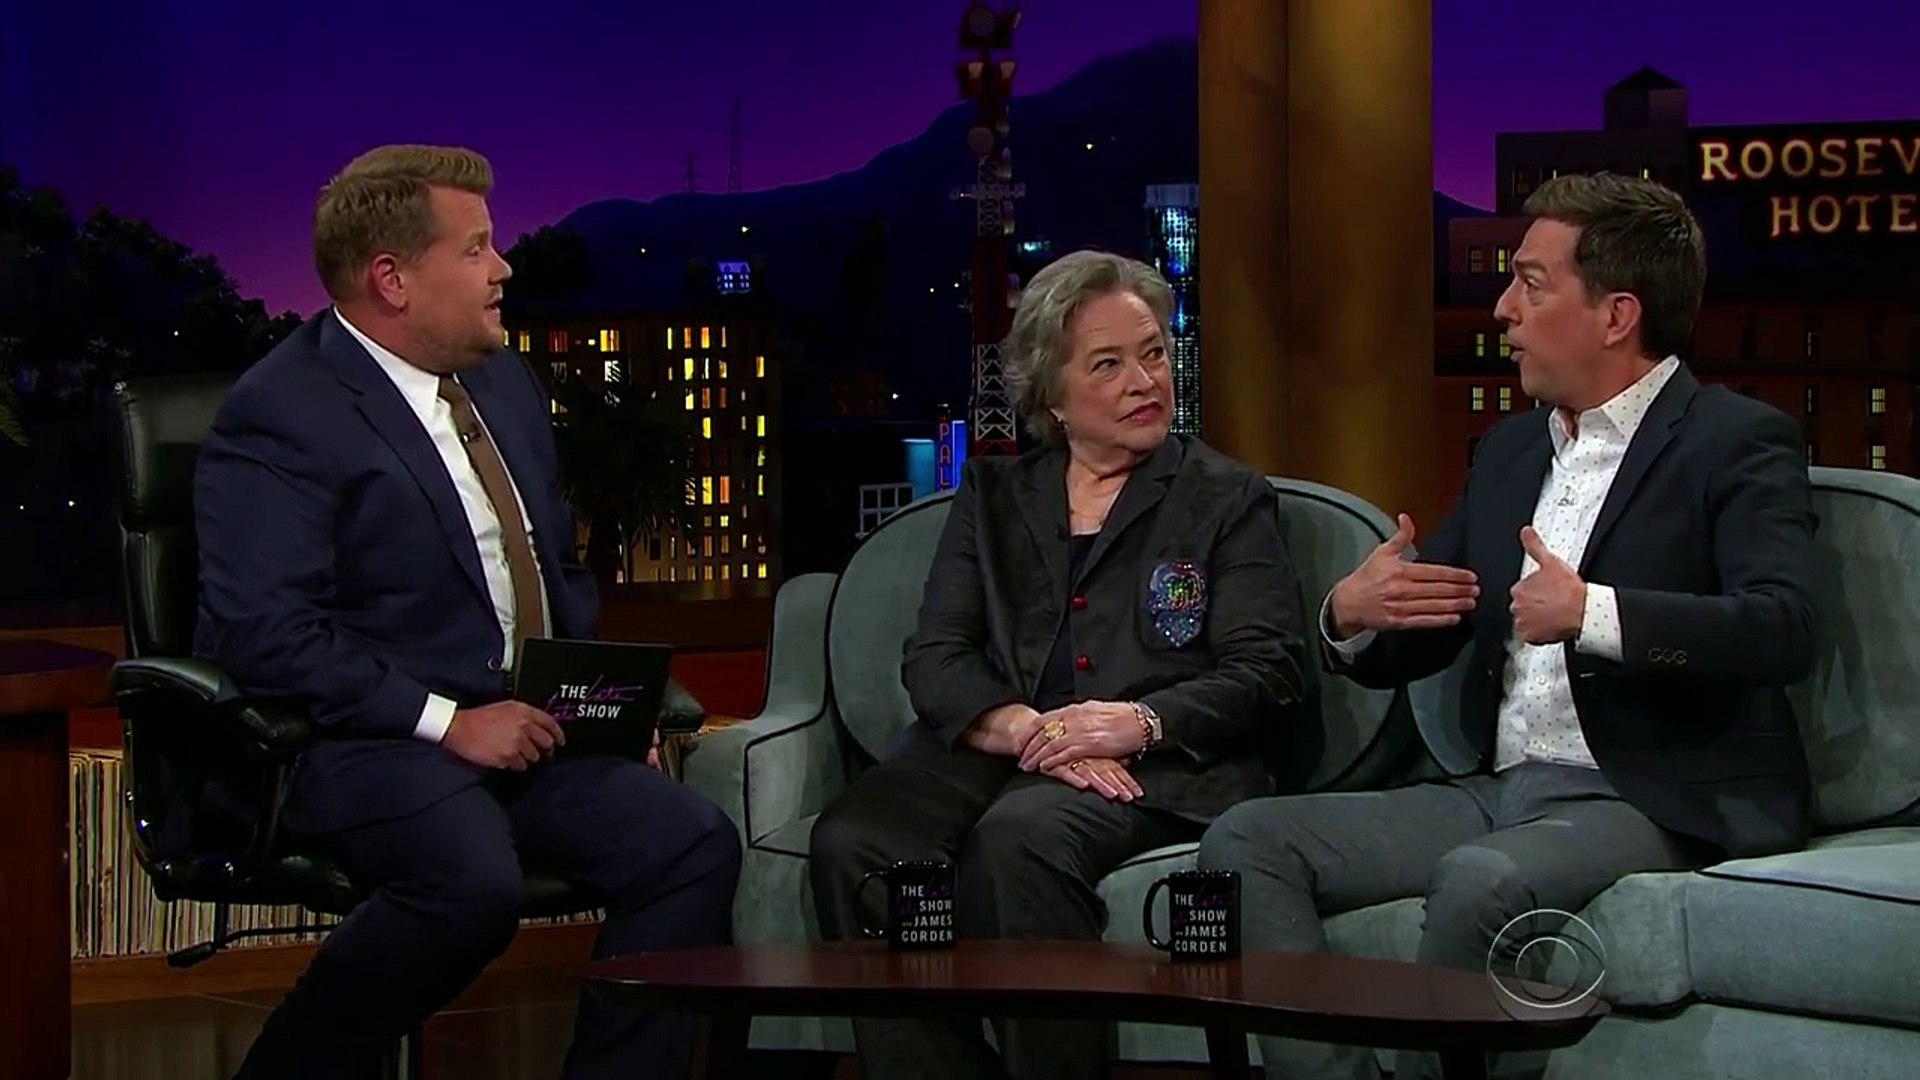 Ed Helms & Kathy Bates Have Different Spirit Animal Journeys-Ng5UyQDEPHQ